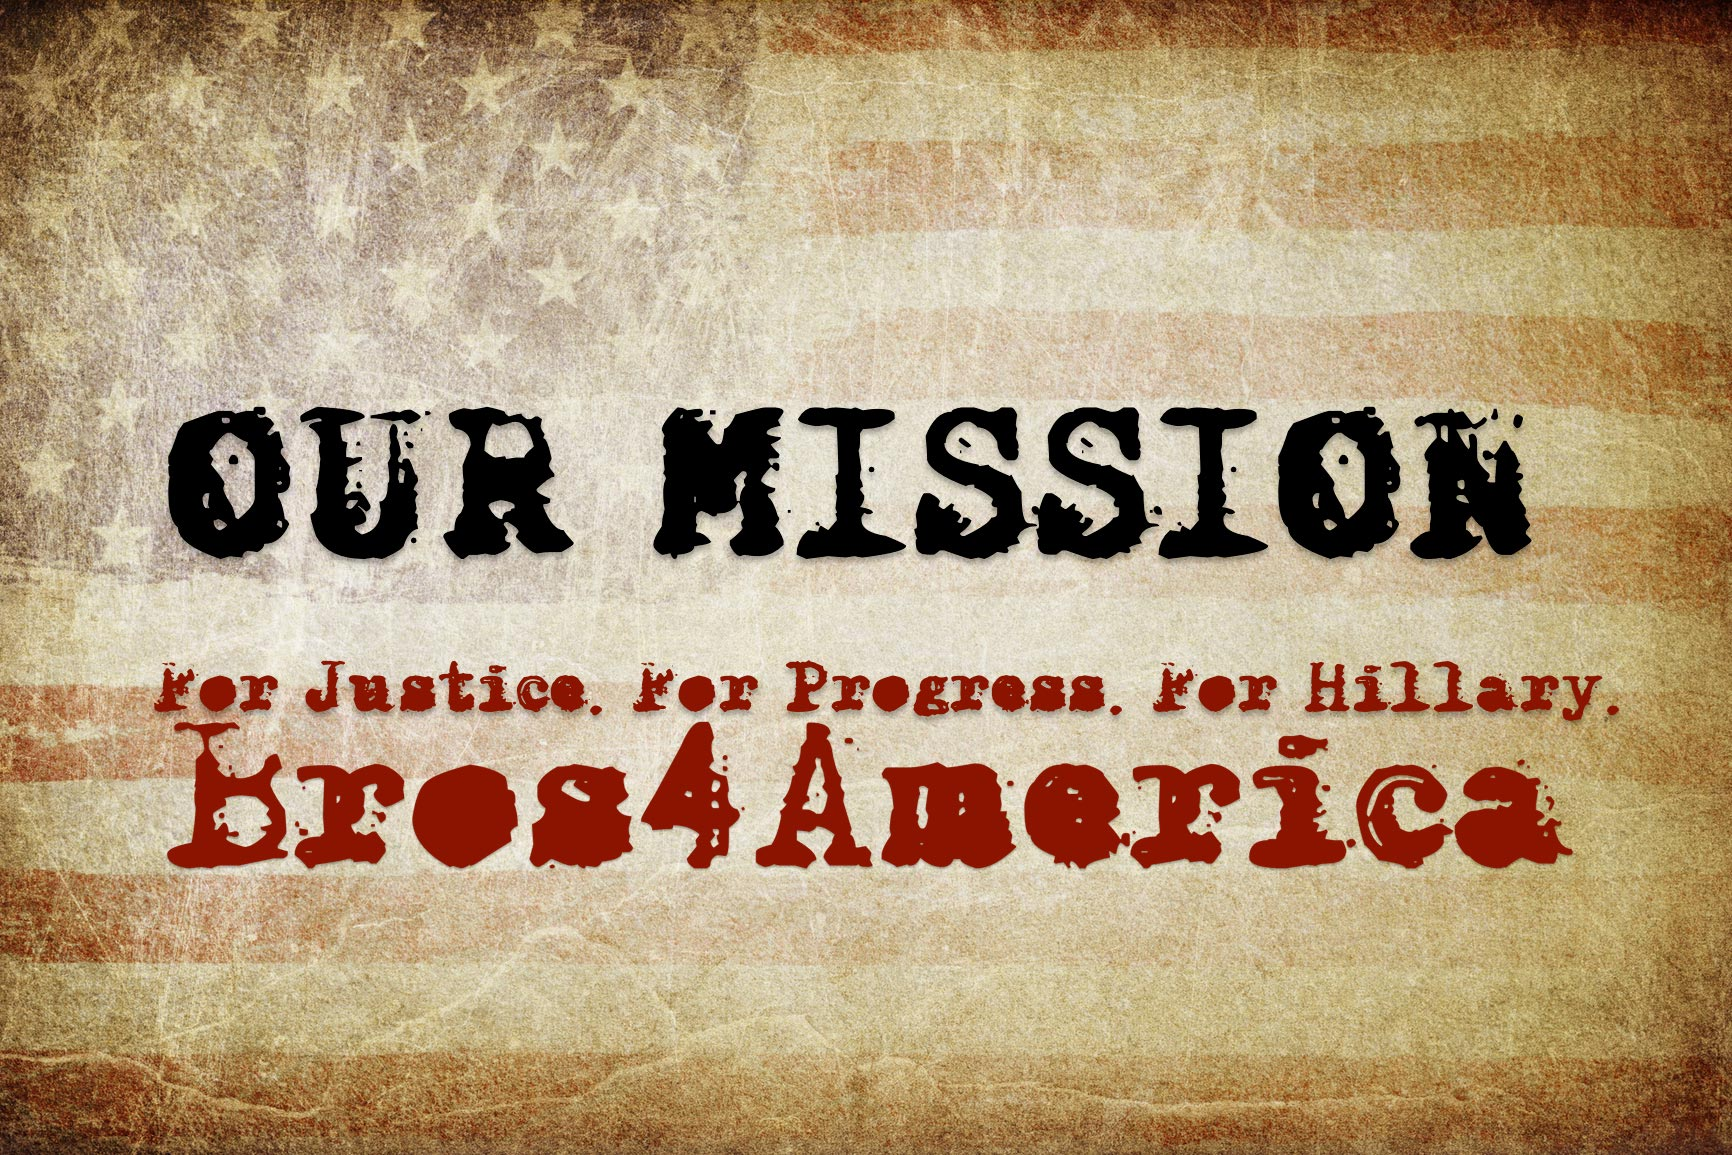 The Official Bros4America Mission Statement